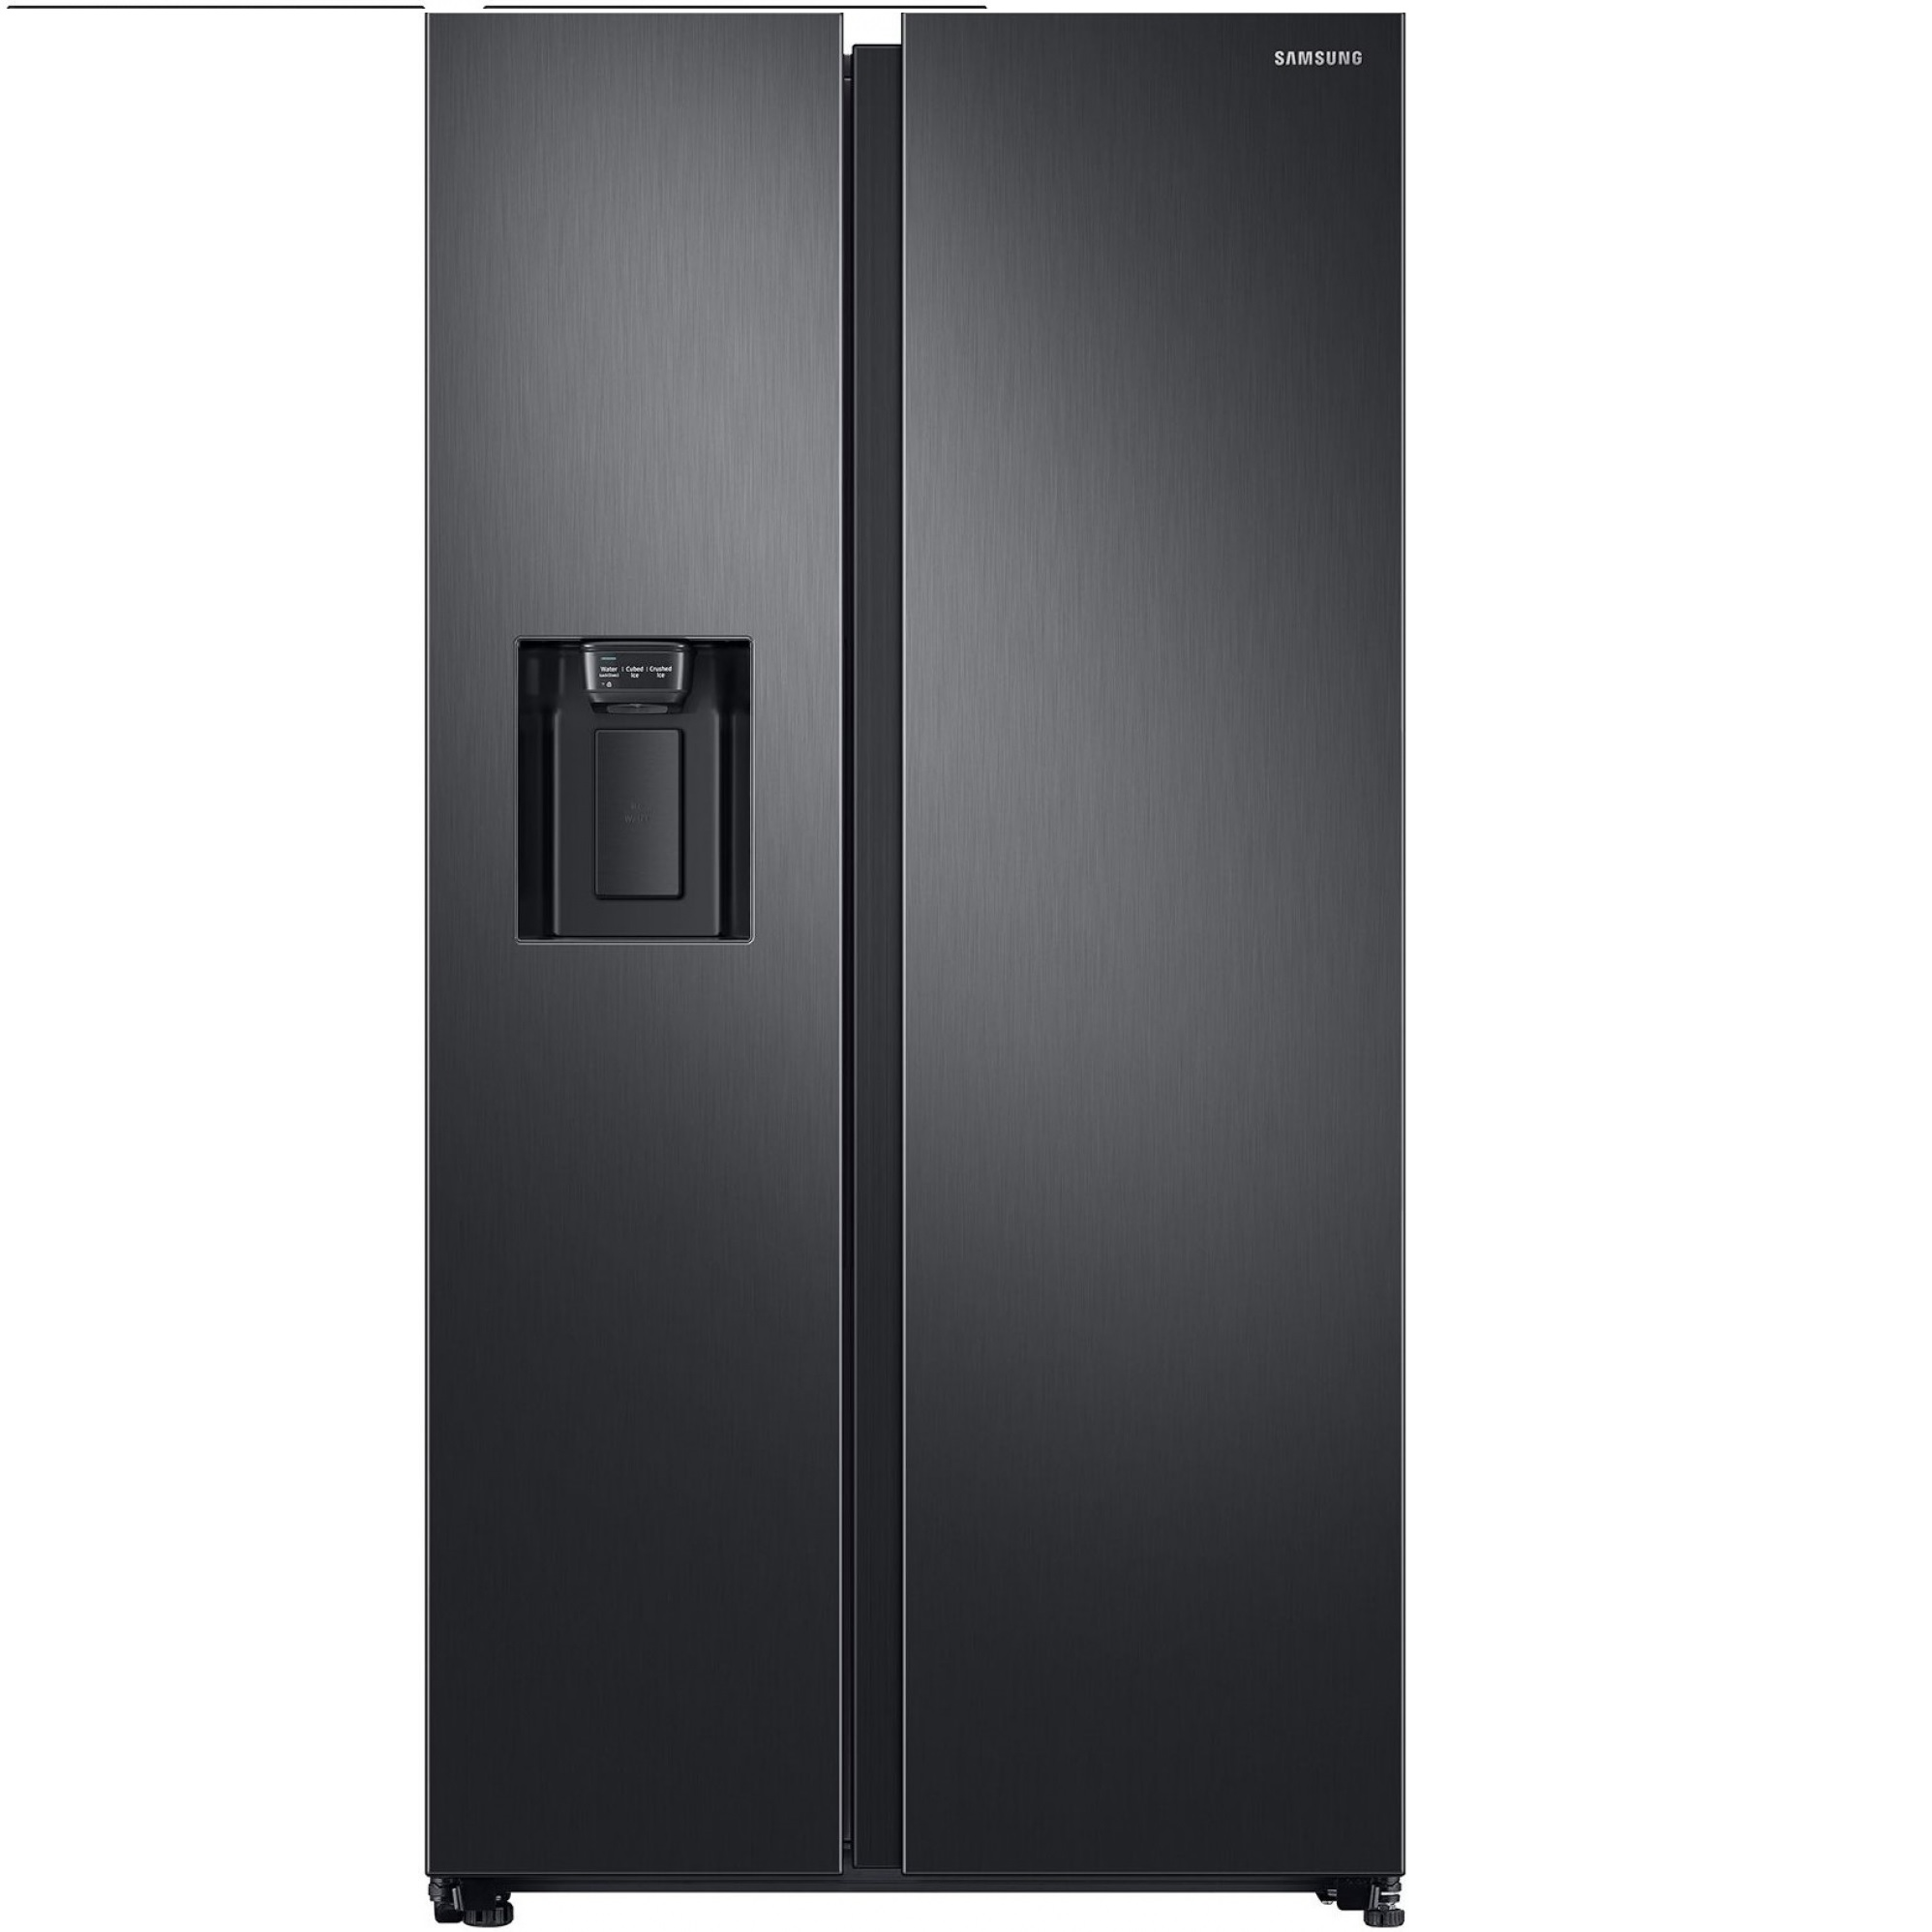 Samsung RS68N8220B1/EF, Side by Side Хладилник, 617 l, Full No Frost, Twin Cooling, Compresor Digital Invertor, Display, Dispenser, A+, H 178 cm, Black